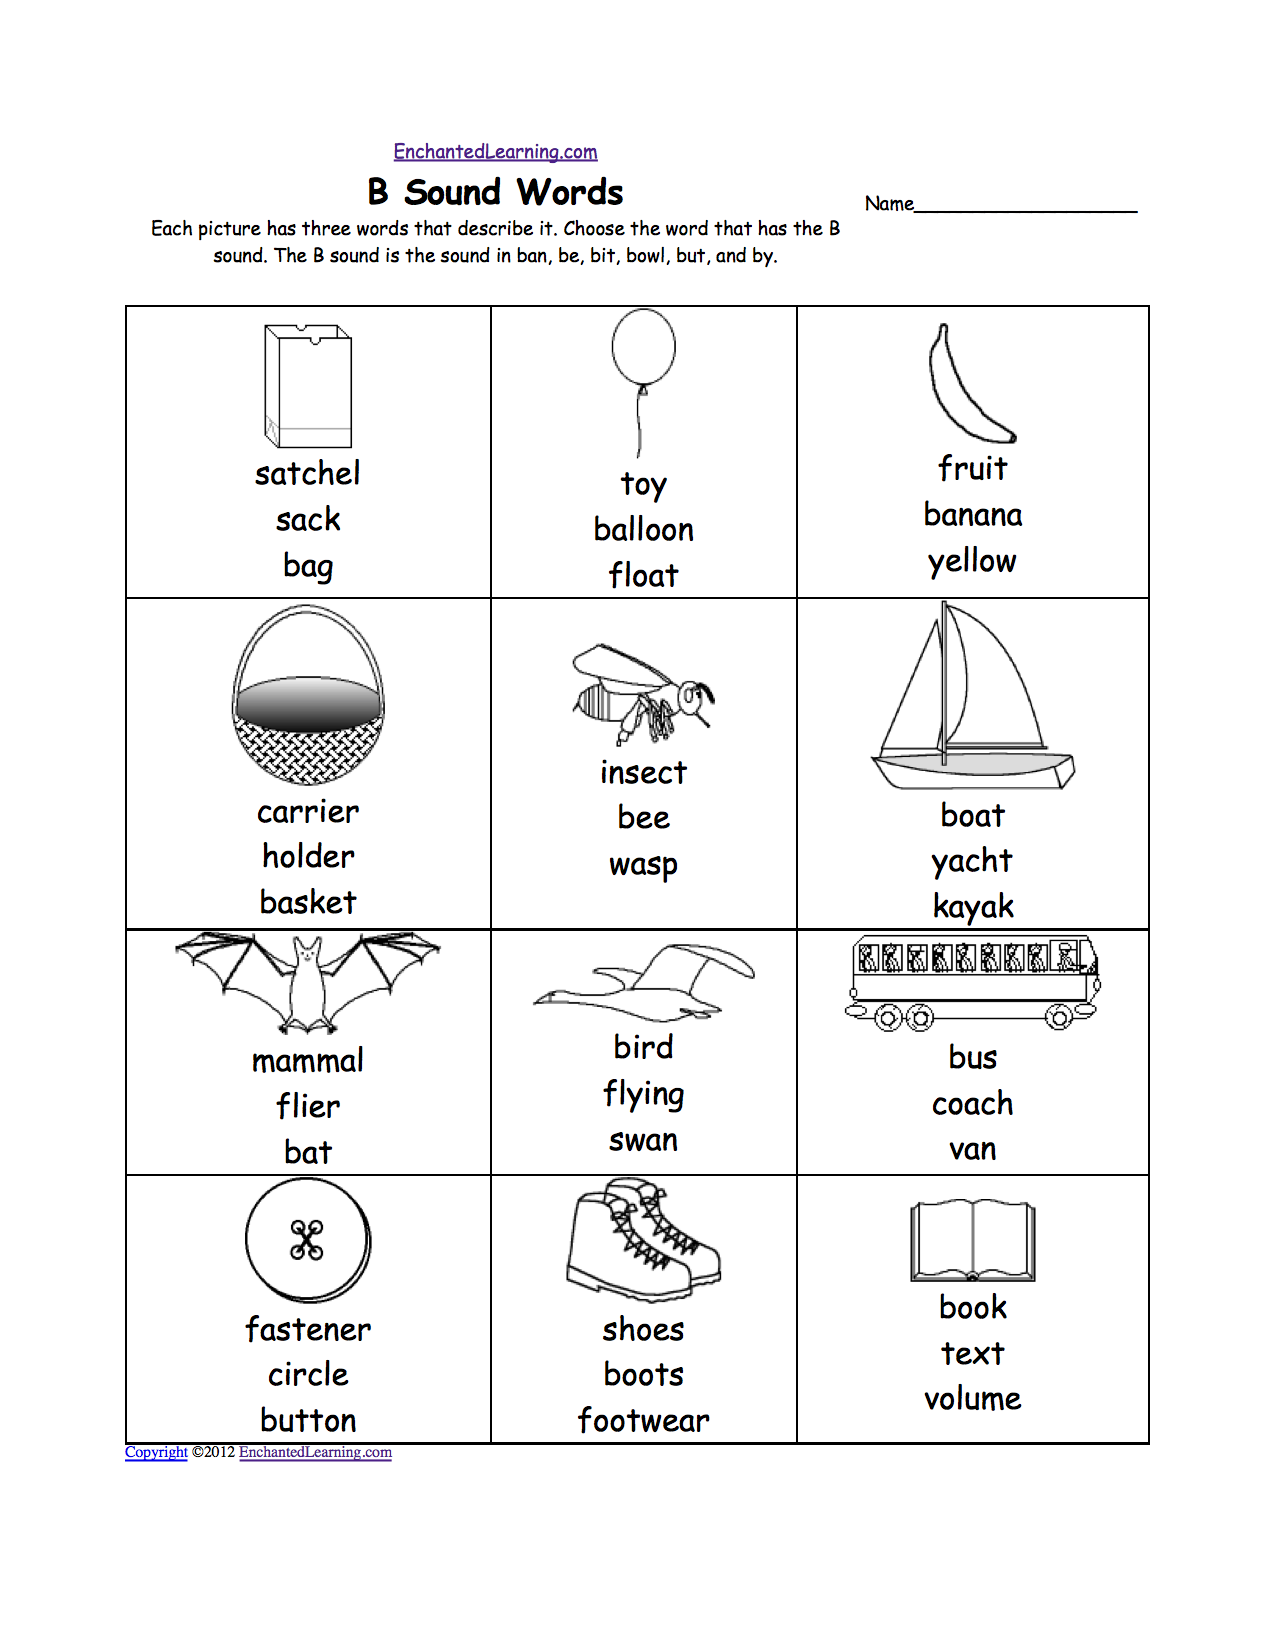 Weirdmailus  Nice Phonics Worksheets Multiple Choice Worksheets To Print  With Foxy Quotbquot Sound Phonics Worksheet Multiple Choice Each Picture Has Three Words That Describe It Choose The Word That Has A Quotbquot Sound The Quotbquot Sound Is The Sound  With Breathtaking Comparing Place Value Worksheets Also Worksheets For Class  English In Addition Worksheet On Kinds Of Adverbs And Free Maths Worksheets For Grade  As Well As Initial Letter Sound Worksheets Additionally Letter Worksheet For Kindergarten From Enchantedlearningcom With Weirdmailus  Foxy Phonics Worksheets Multiple Choice Worksheets To Print  With Breathtaking Quotbquot Sound Phonics Worksheet Multiple Choice Each Picture Has Three Words That Describe It Choose The Word That Has A Quotbquot Sound The Quotbquot Sound Is The Sound  And Nice Comparing Place Value Worksheets Also Worksheets For Class  English In Addition Worksheet On Kinds Of Adverbs From Enchantedlearningcom